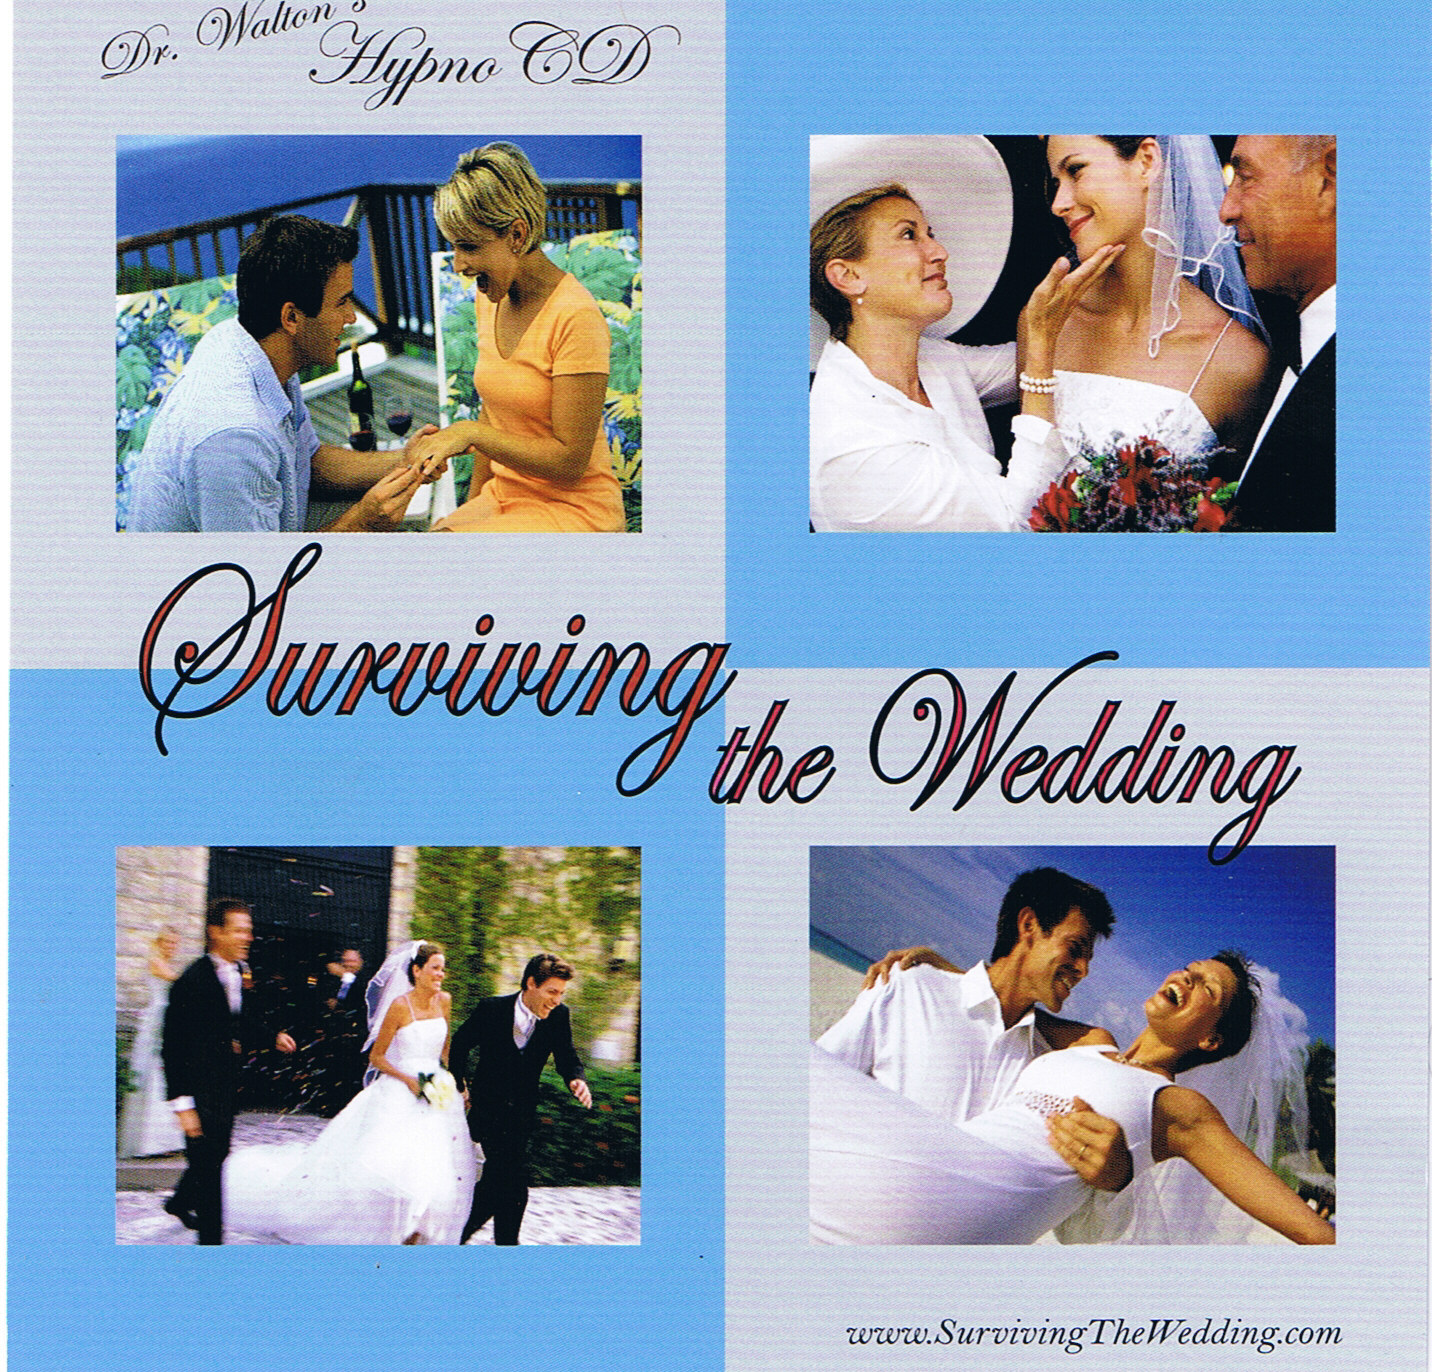 Dr. Walton's Surviving The Wedding [DD]